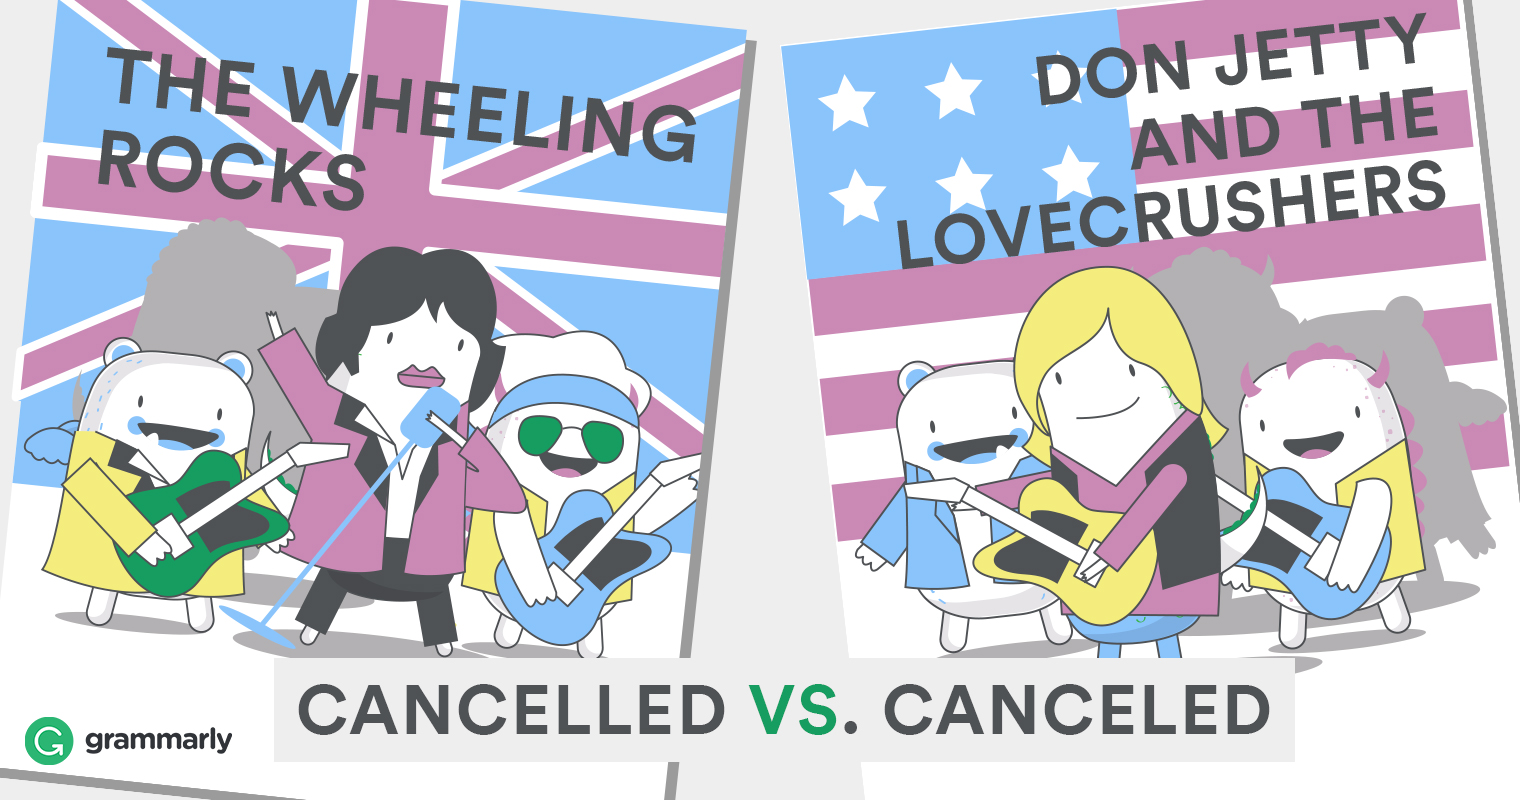 Is It Canceled or Cancelled? | Grammarly